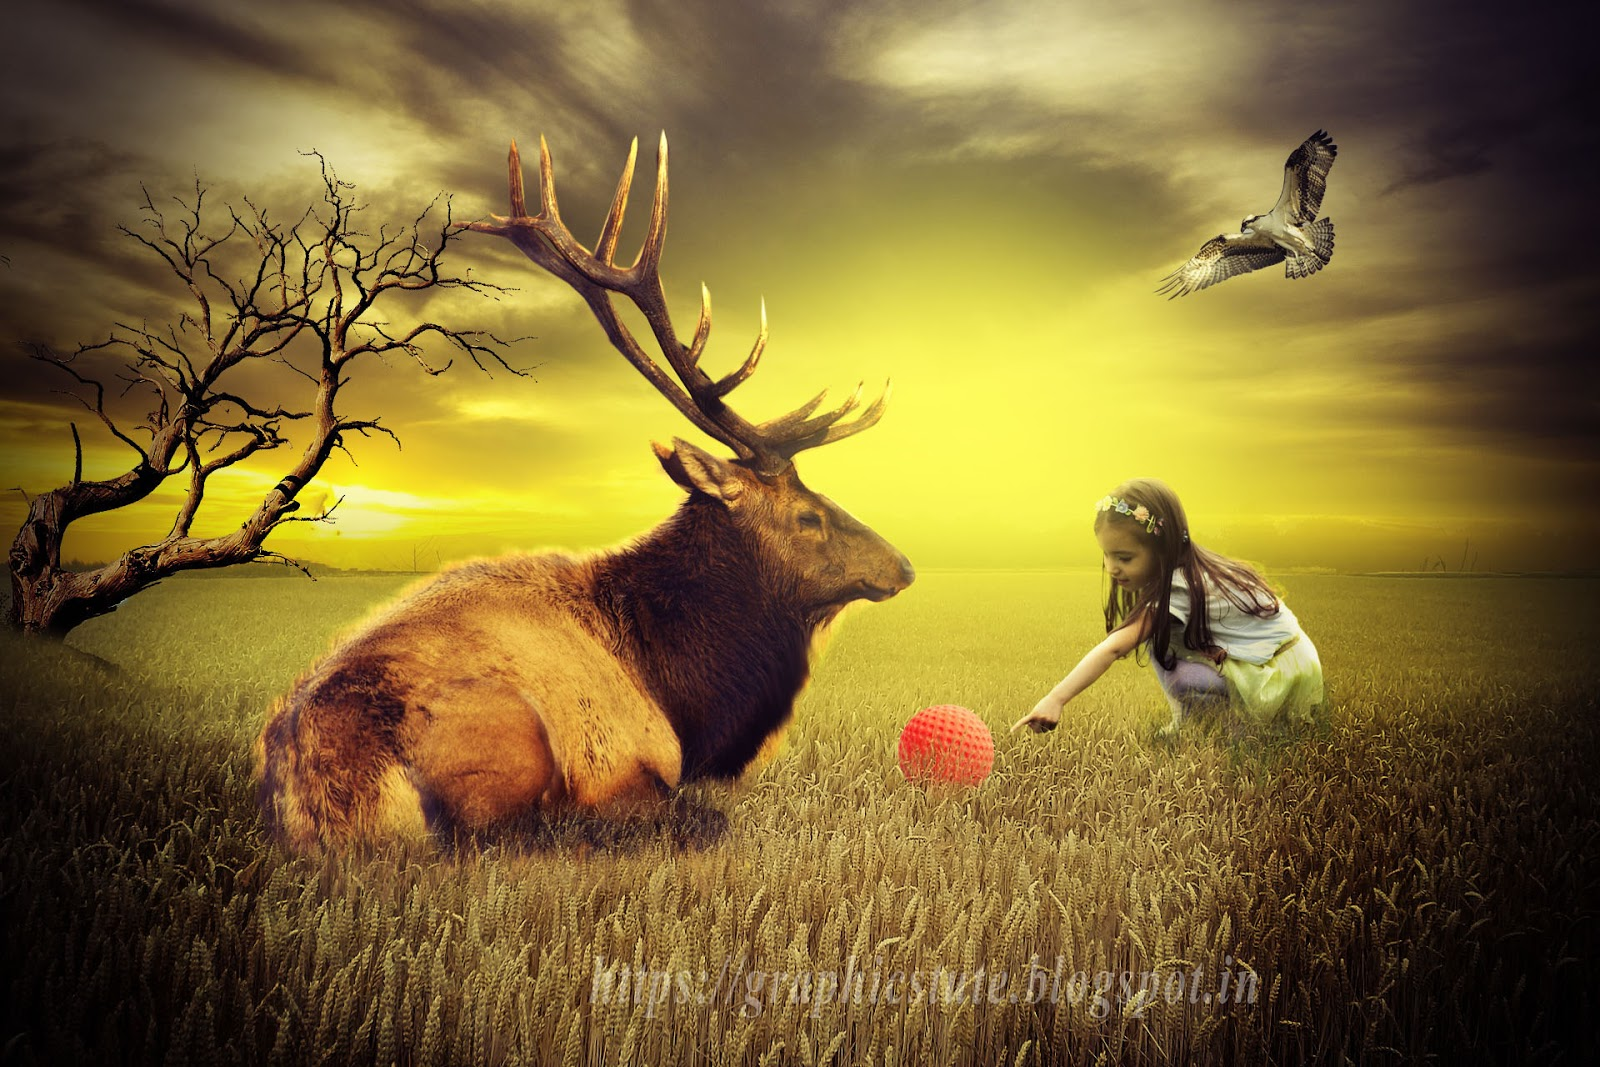 Photo Manipulation Tutorial Deer And Girl In Photoshop